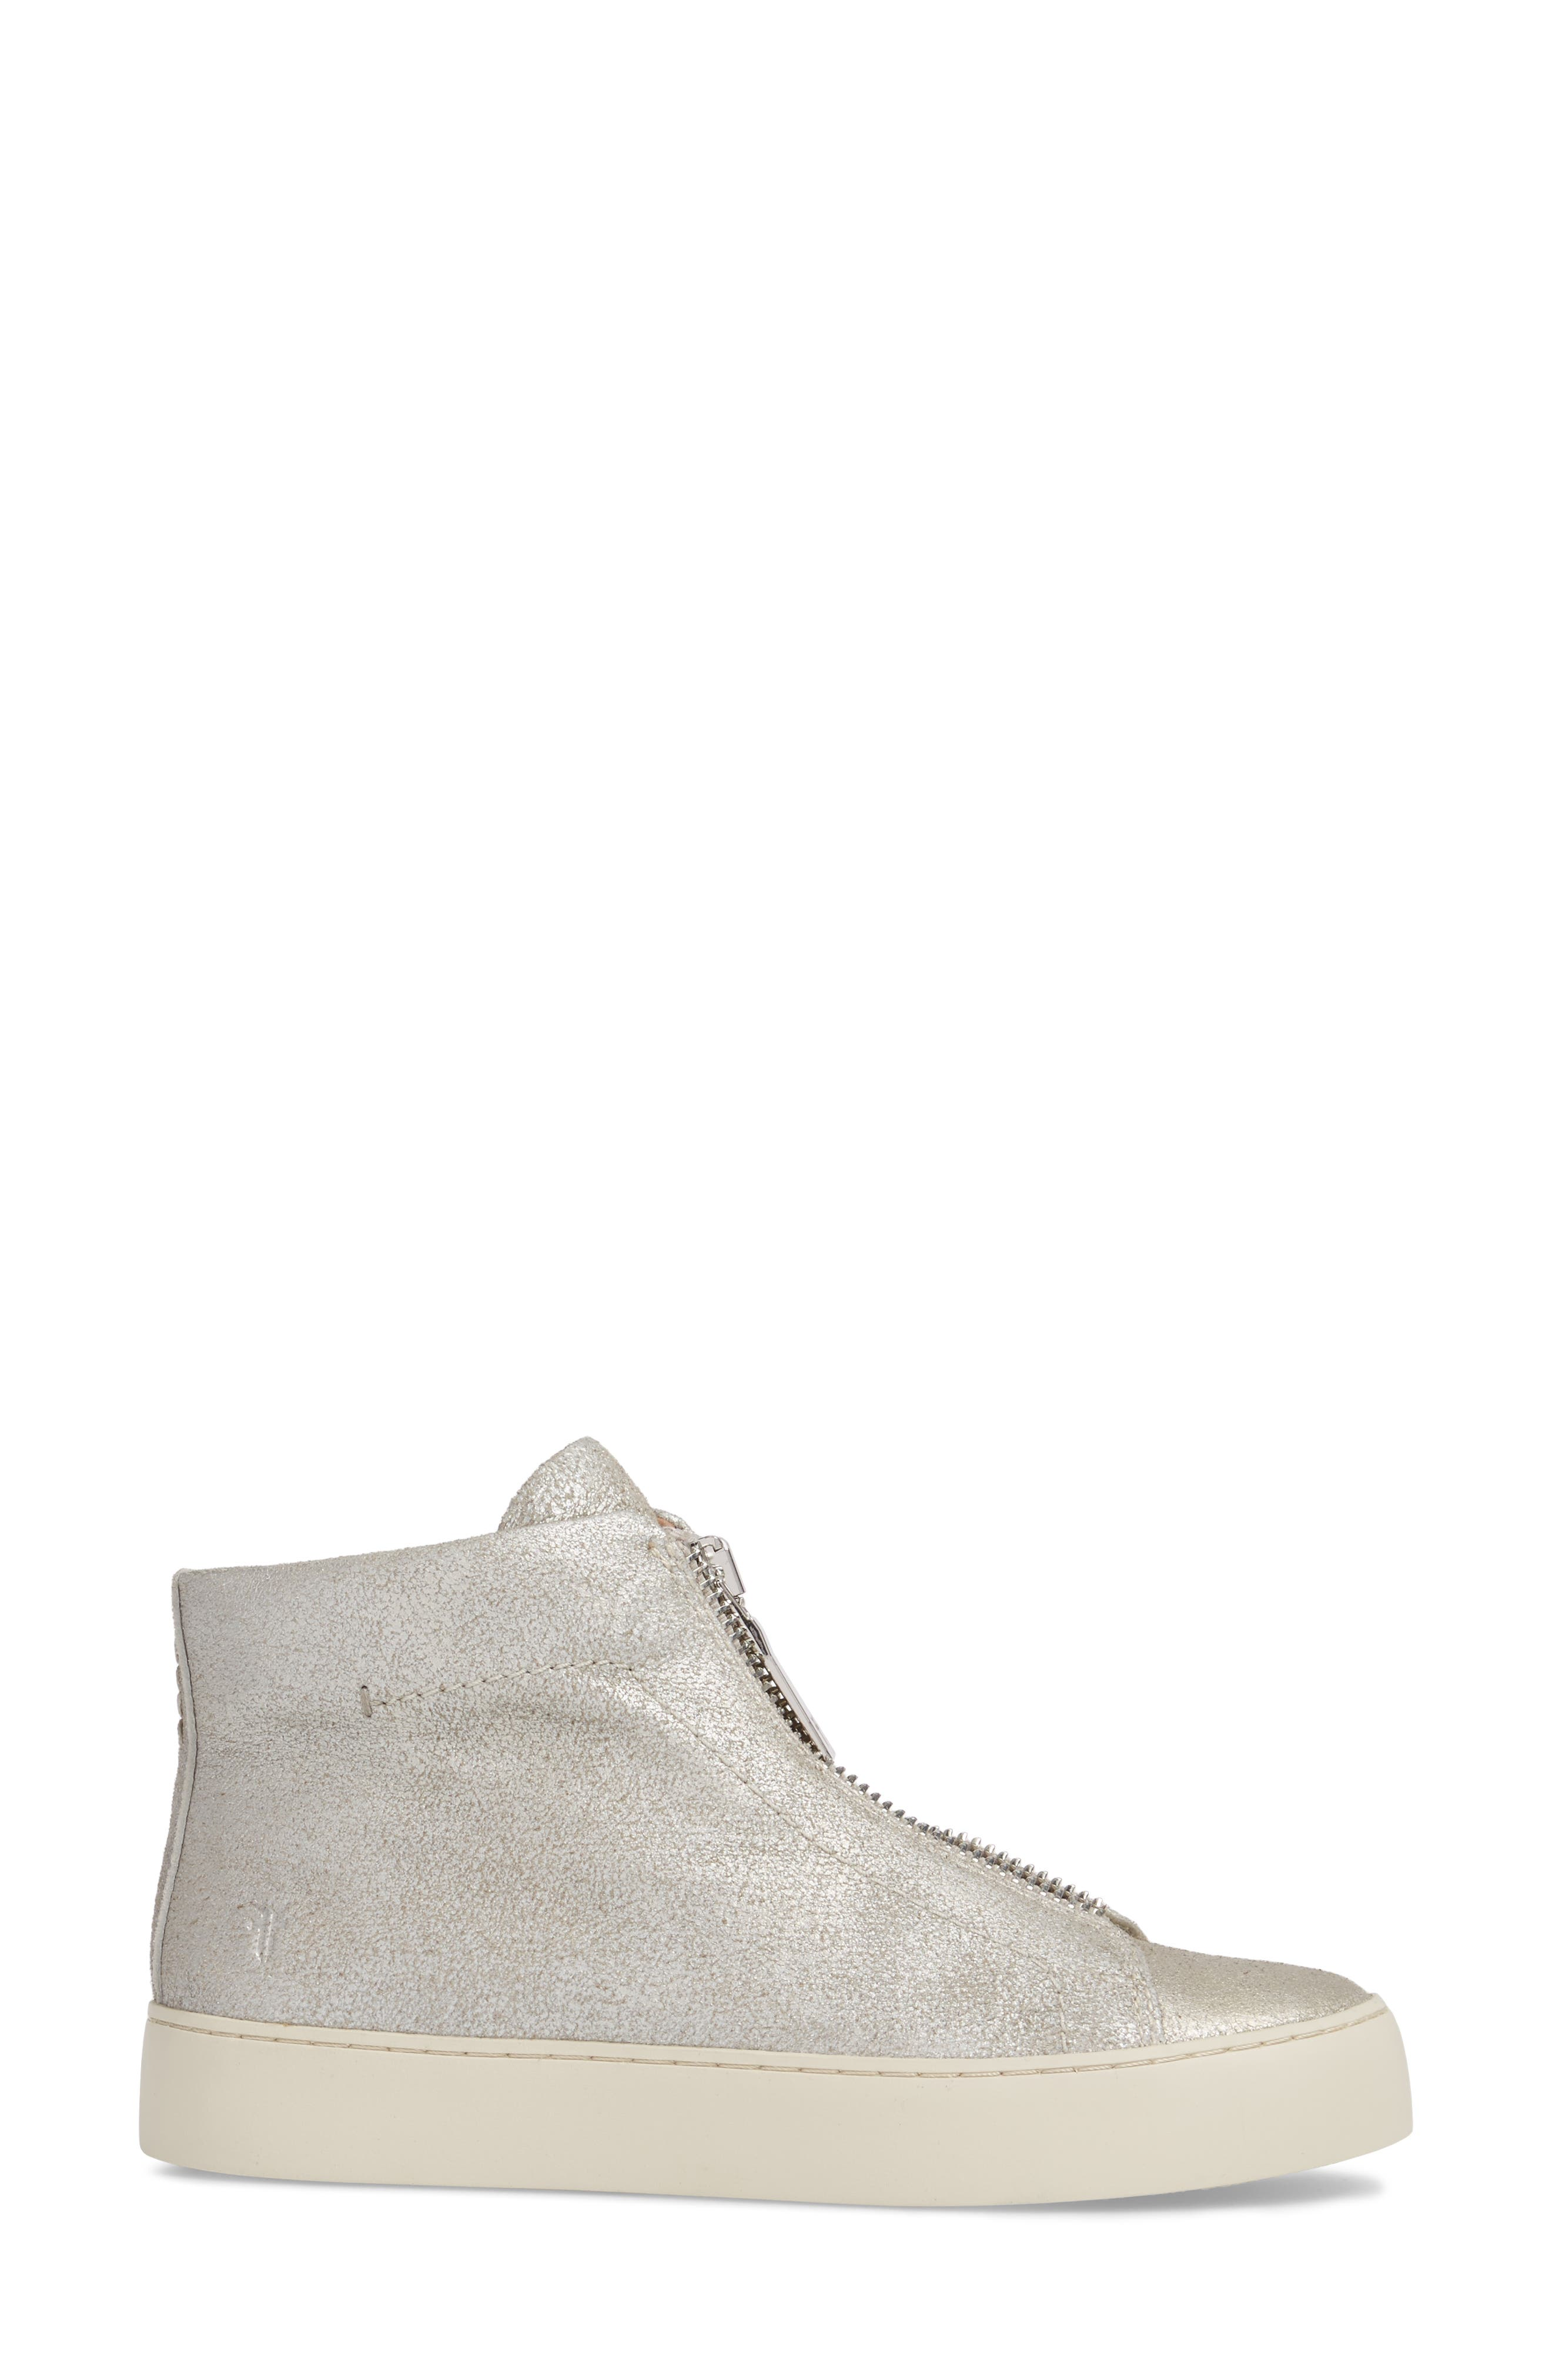 Lena Zip High Top Sneaker,                             Alternate thumbnail 3, color,